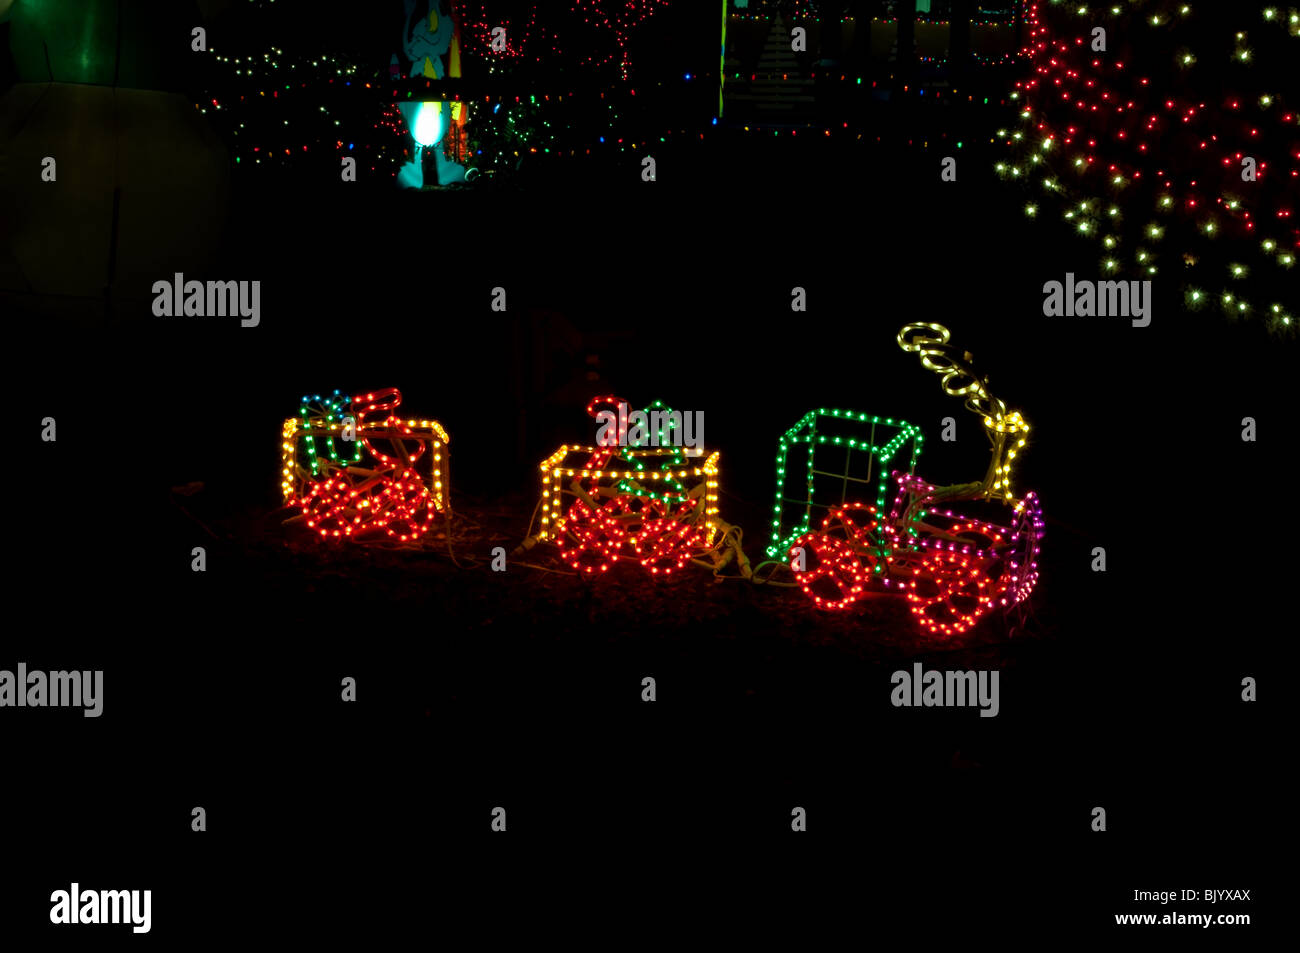 this little toy train is in christmas lights at night against a dark background with other